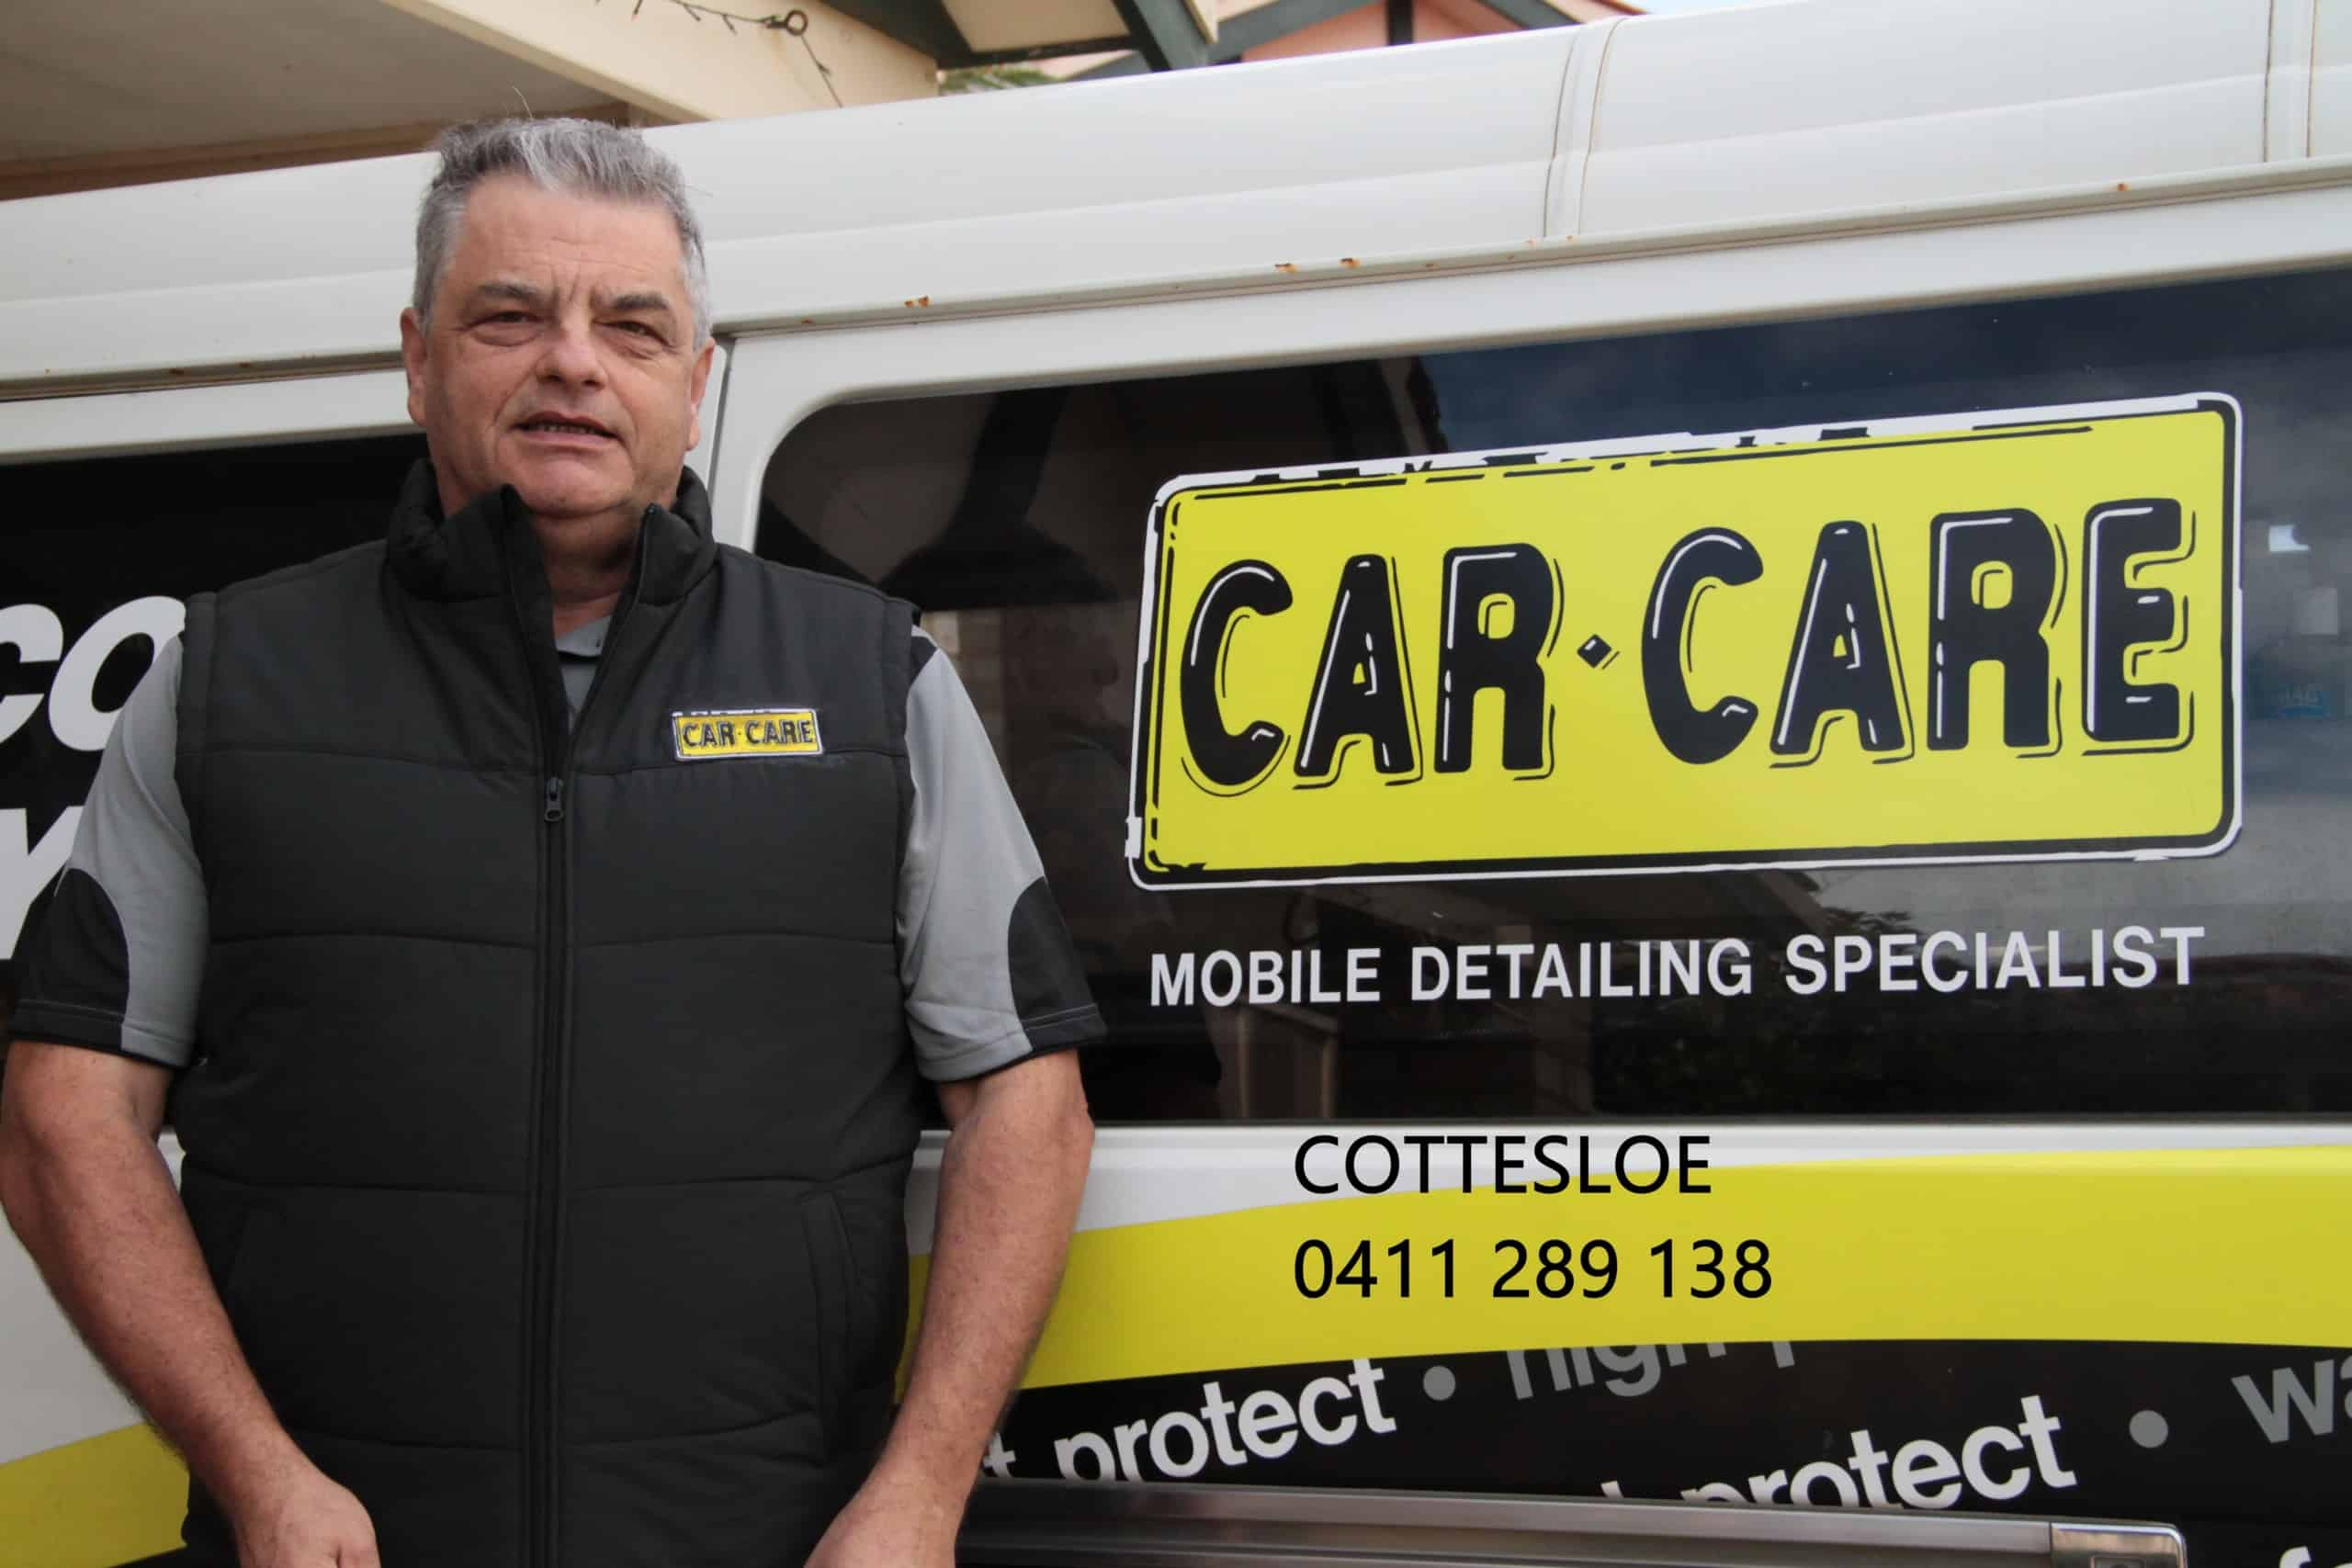 Con Car Care Cottesloe standing in front of detailing van